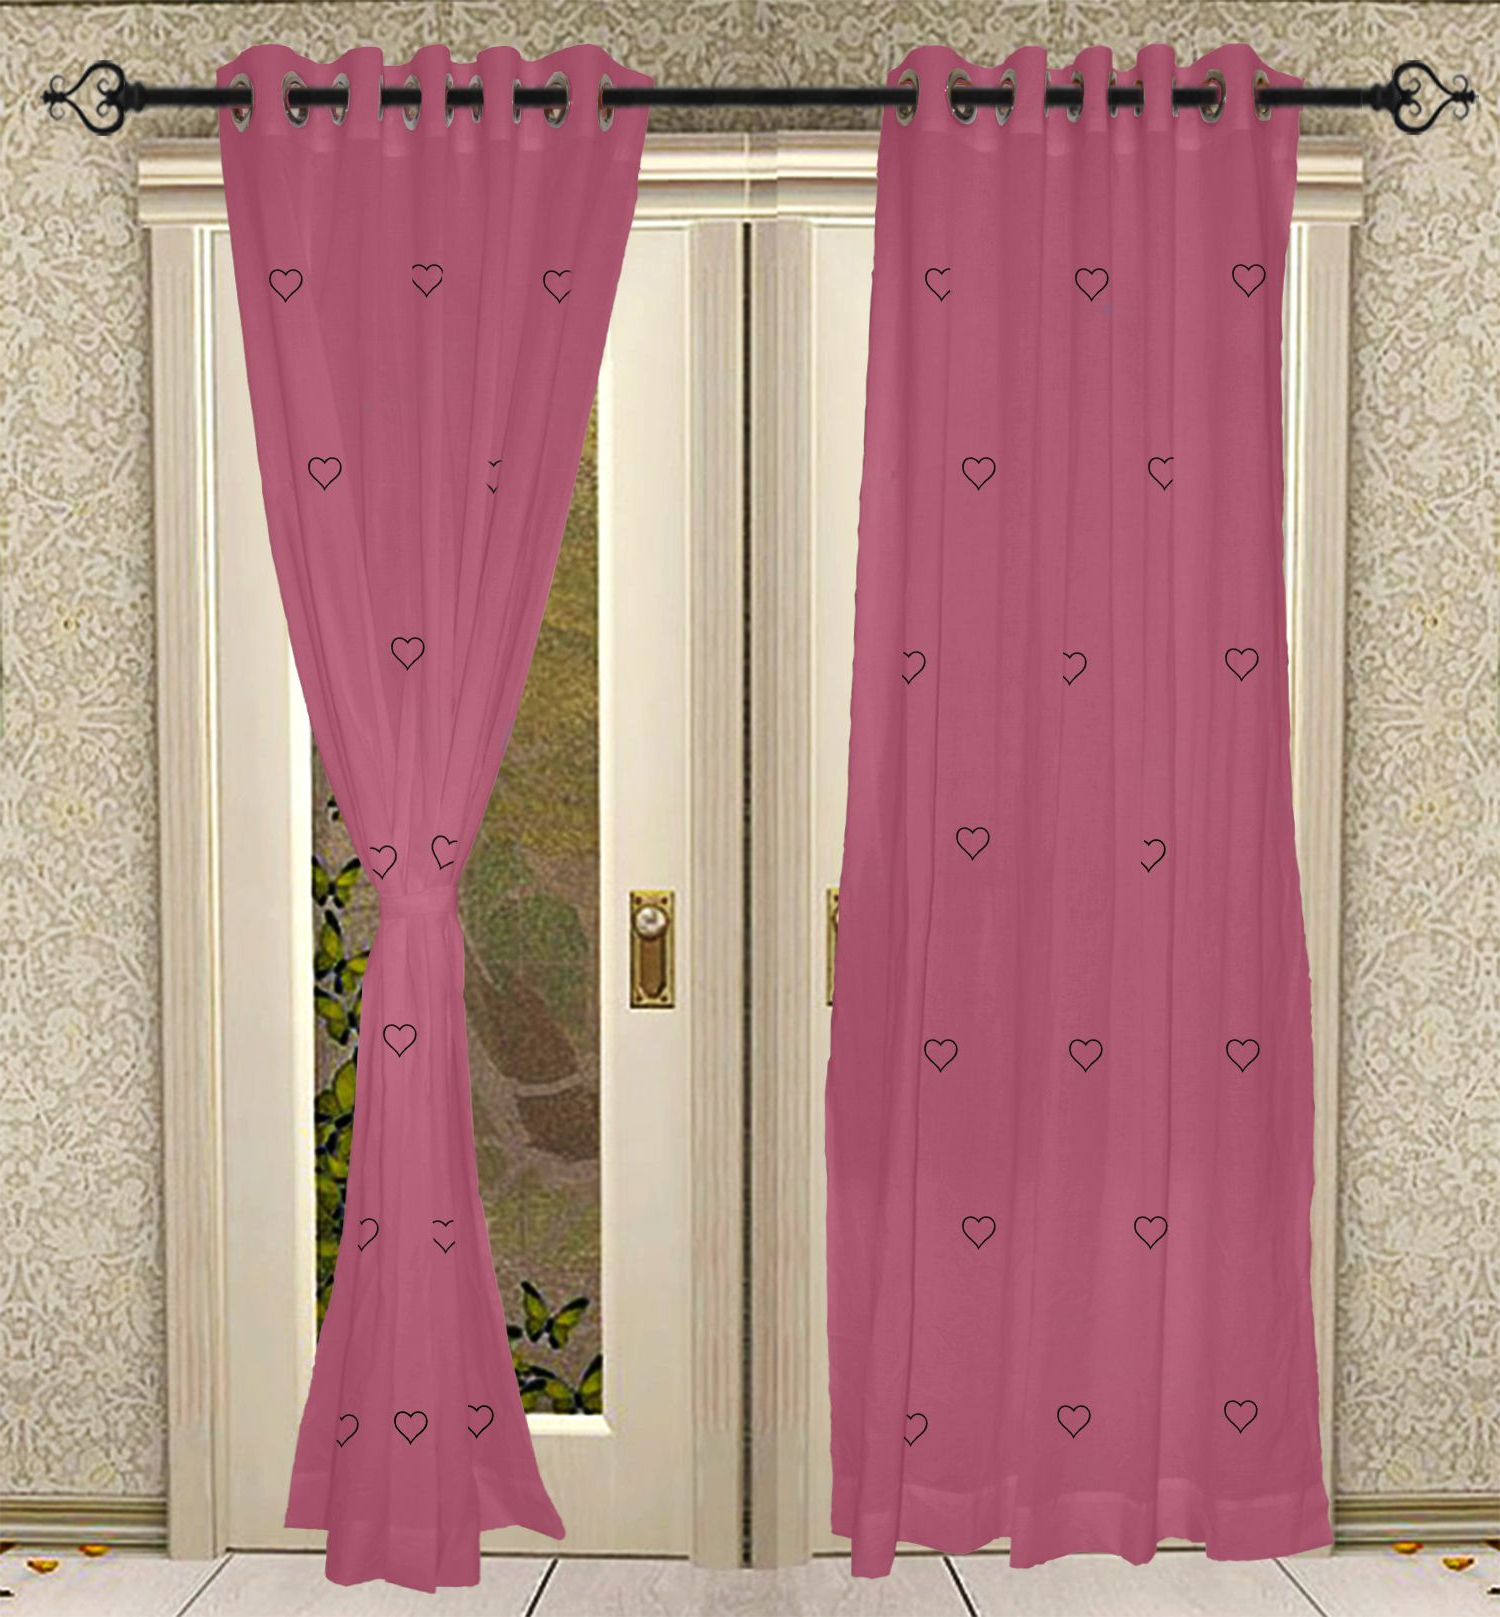 Latest Eyelet Hand Block Printed Ganesha Cotton Pink Curtain Panels For Door 42 X  84 Inch With Regard To Solid Cotton Curtain Panels (Gallery 20 of 20)